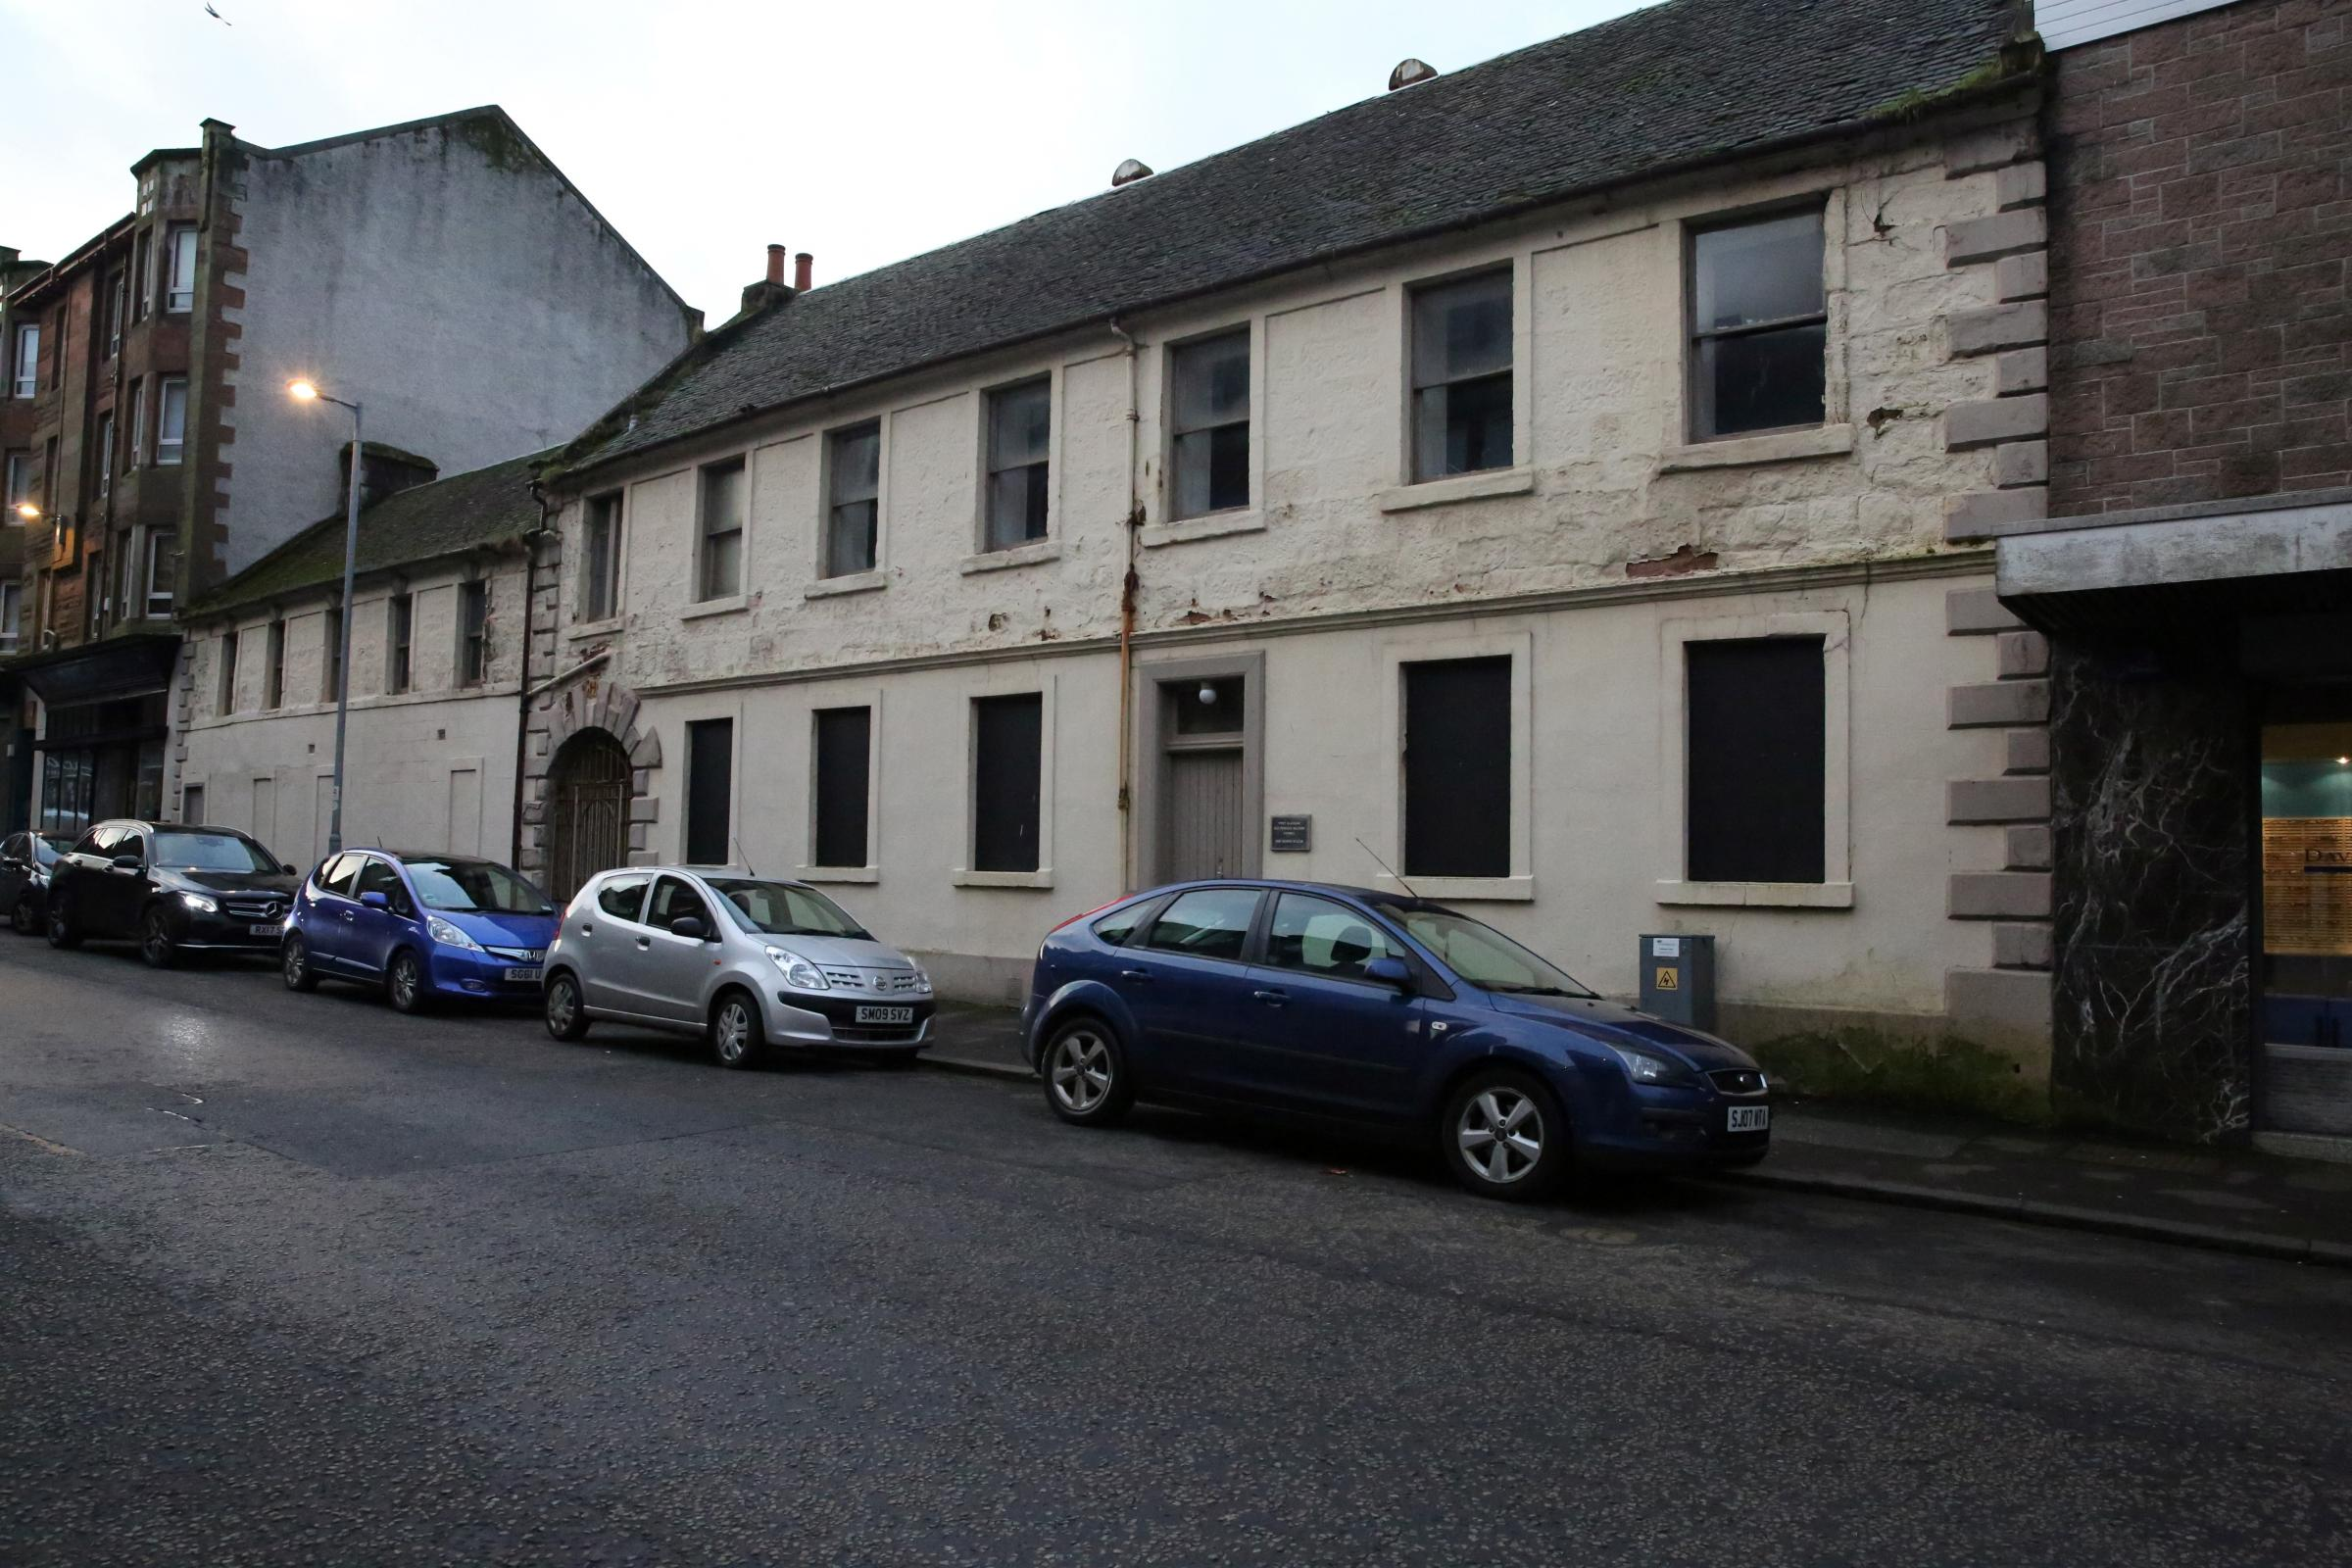 Plan to preserve historic Port Glasgow building given go-ahead